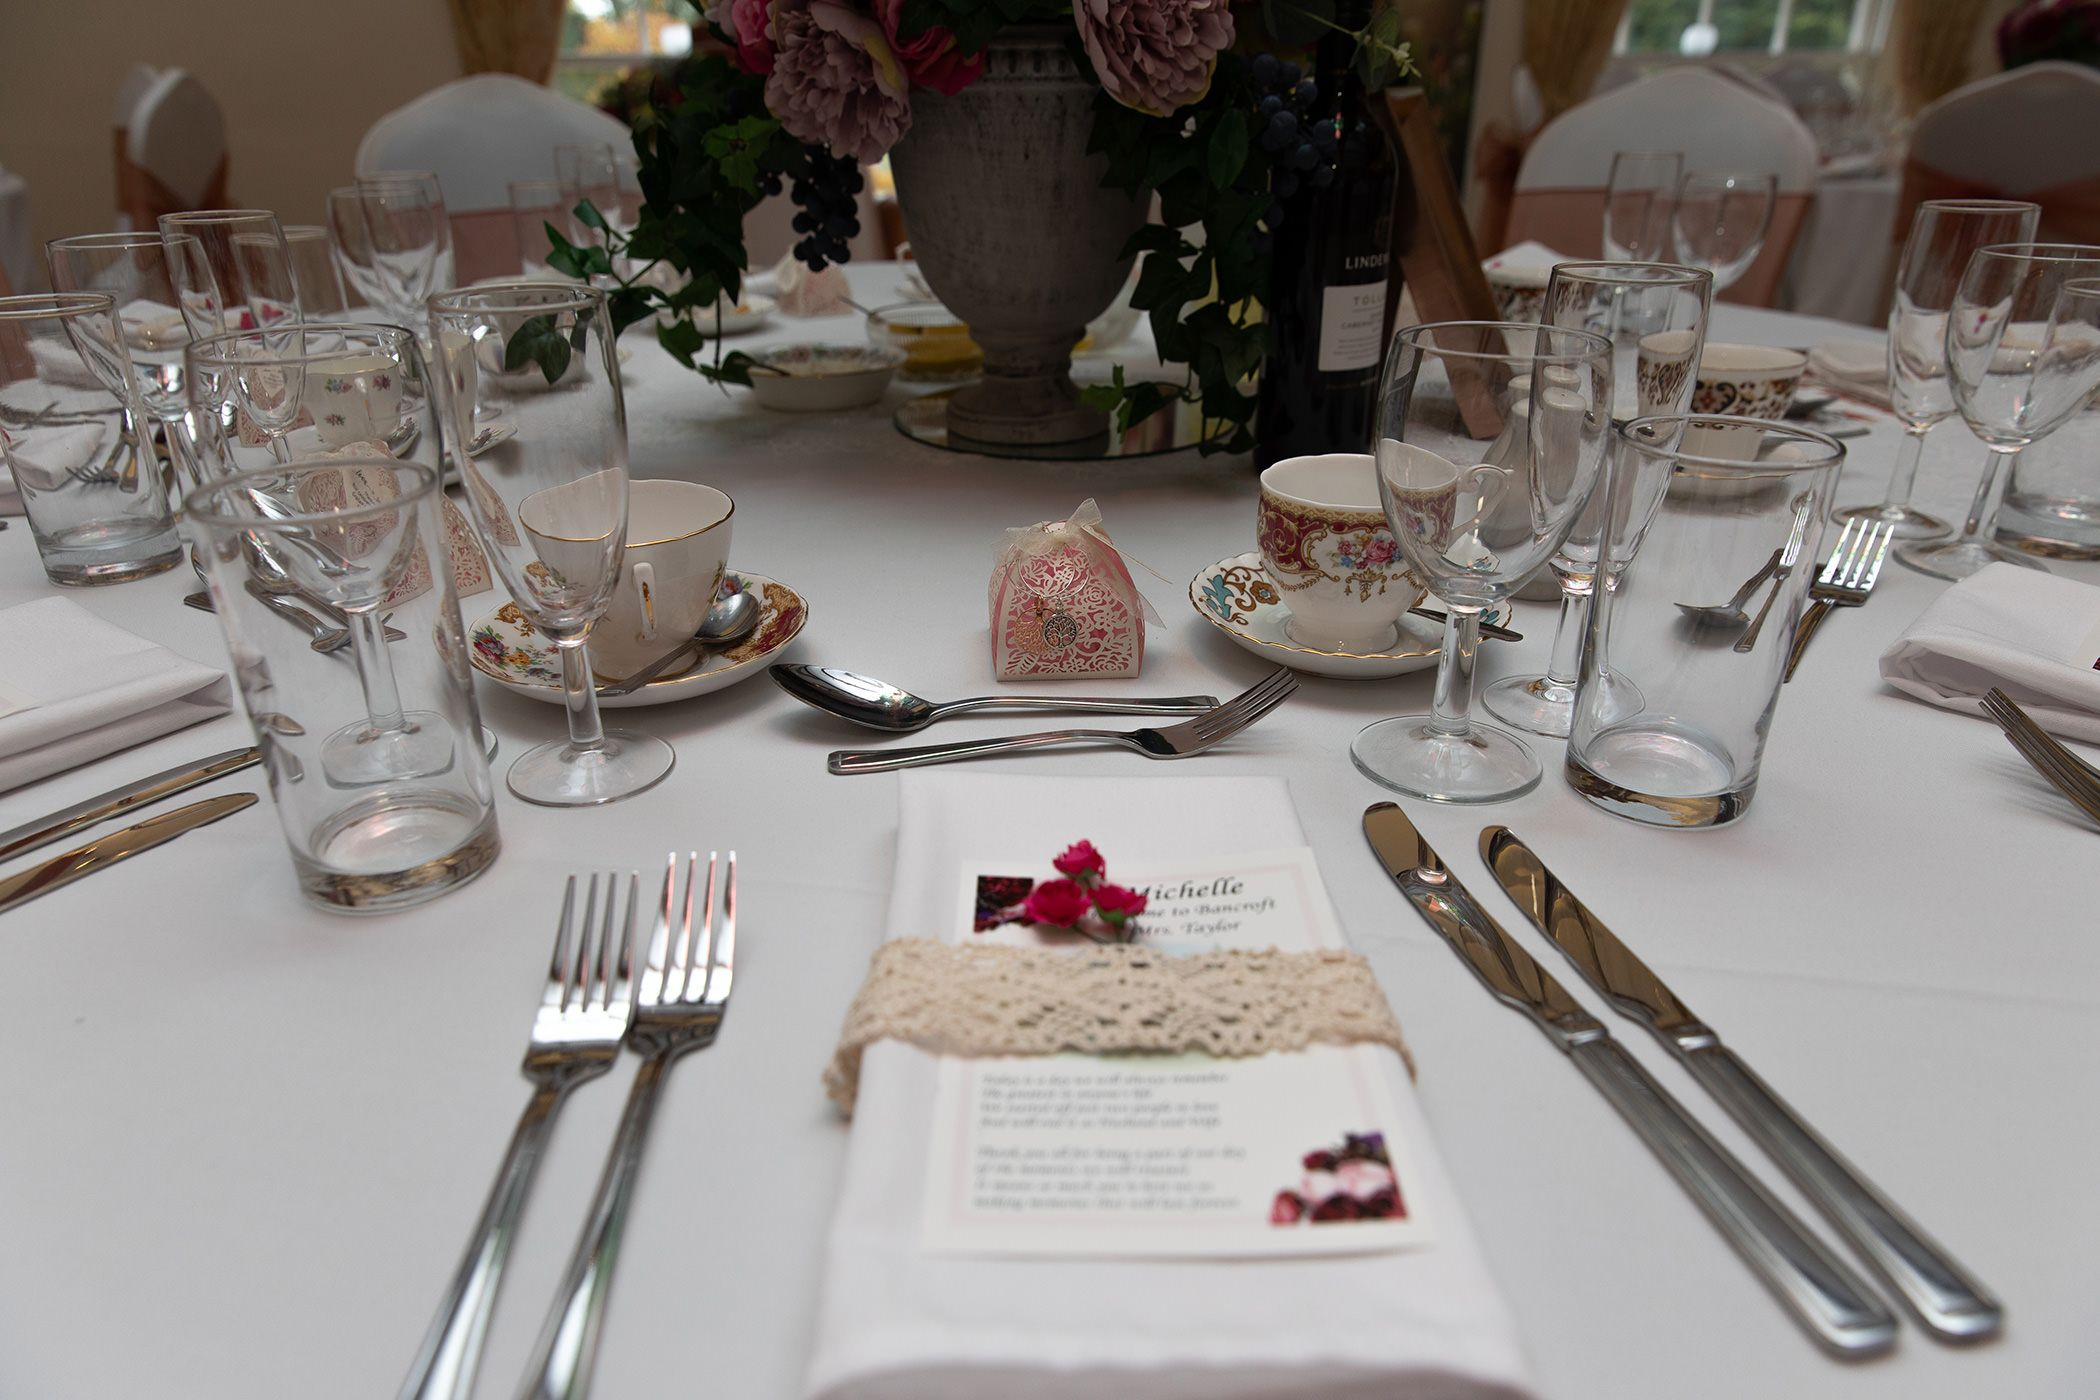 The lovely tableware and decorations